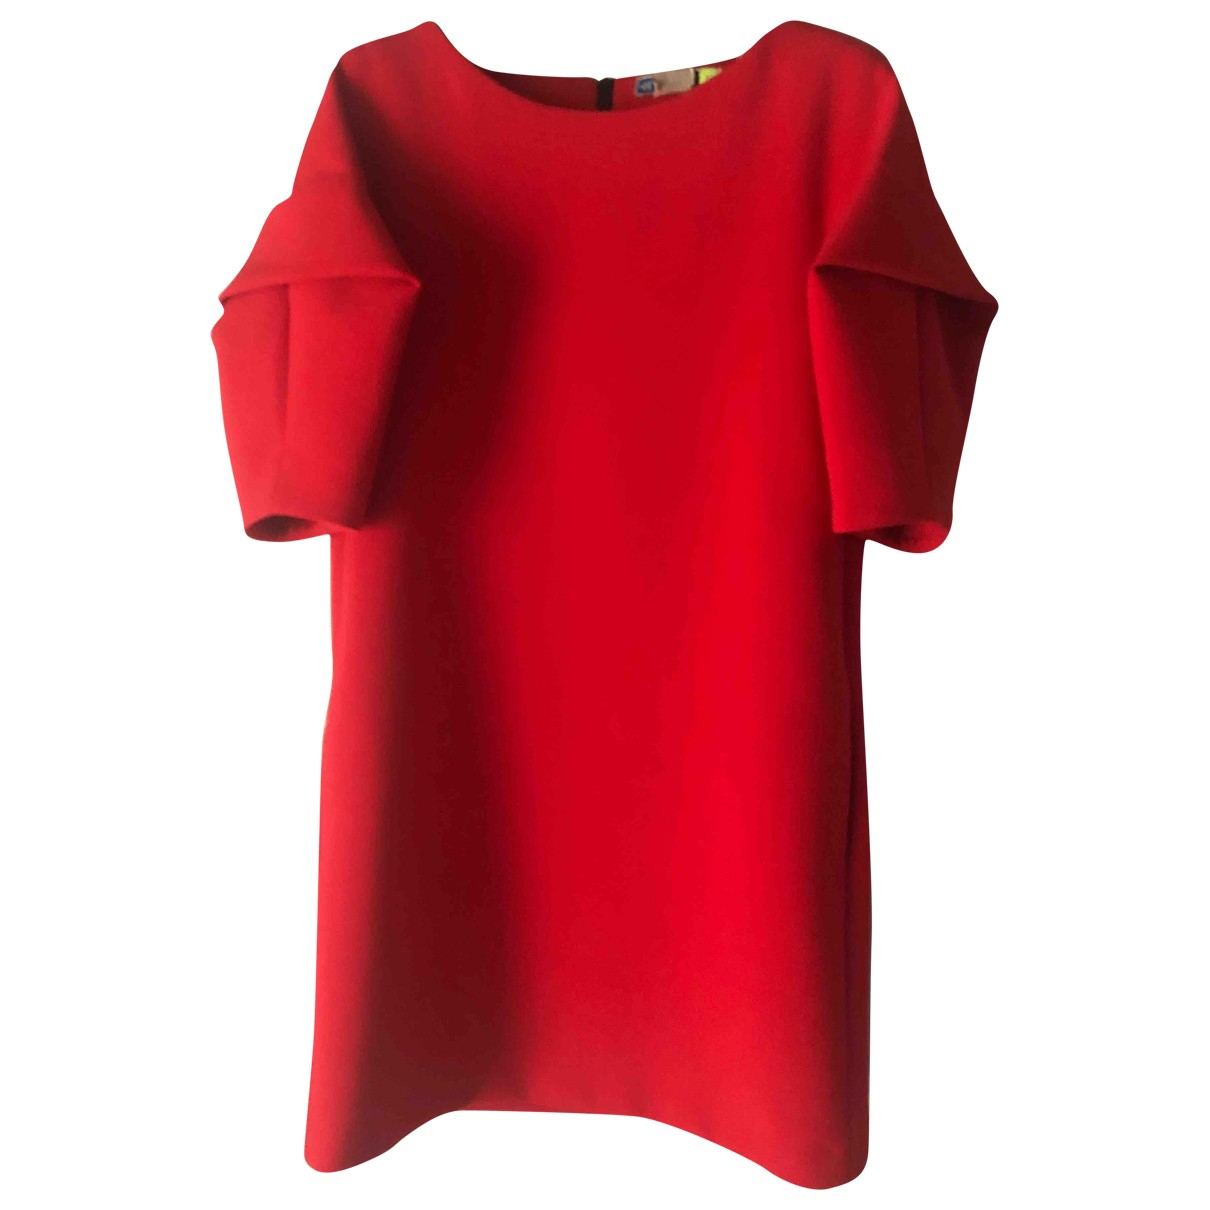 Msgm \N Red Wool dress for Women 38 IT